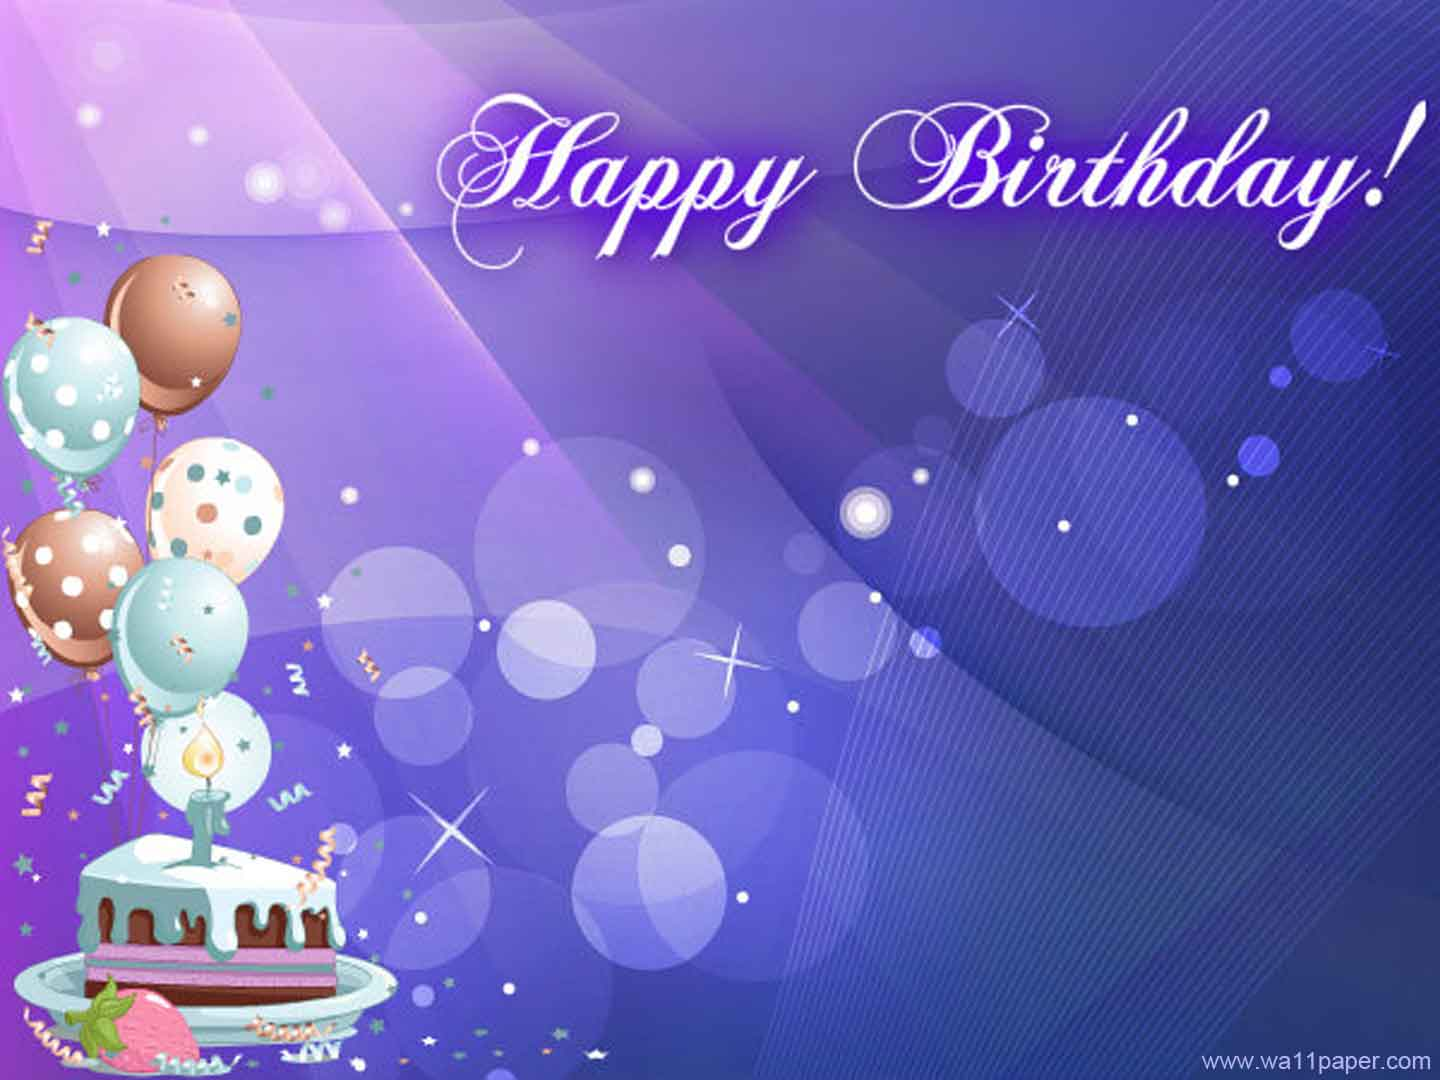 Birthday Computer Wallpapers, Desktop Backgrounds